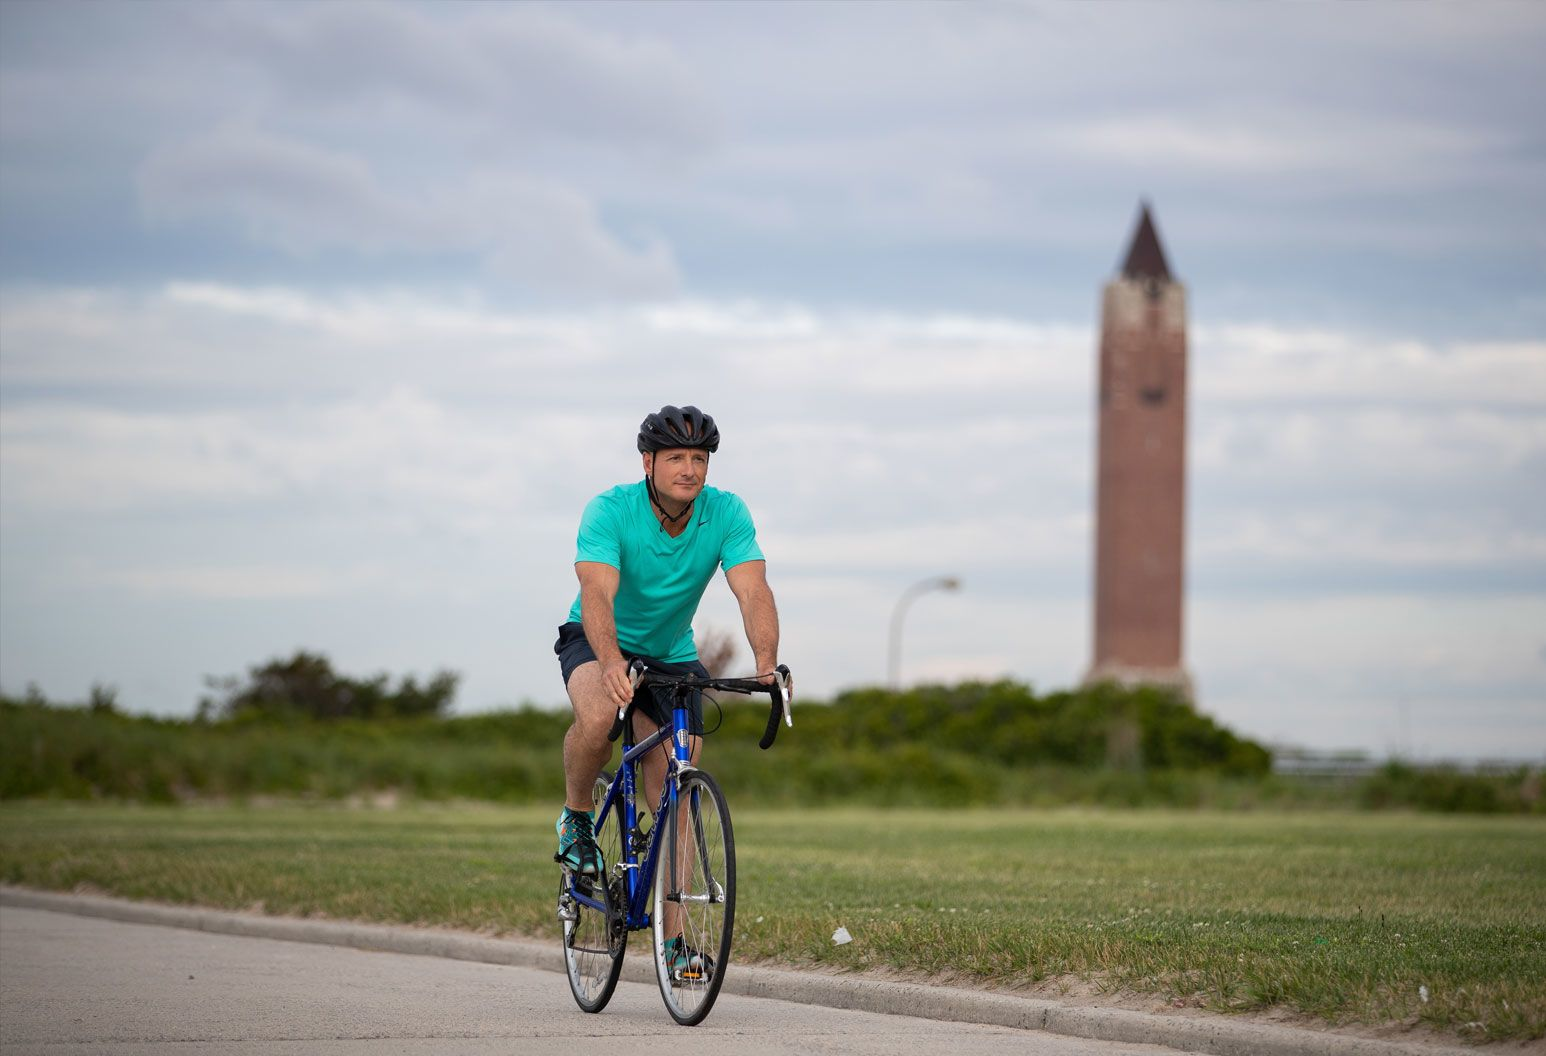 A man wearing a bright blue shirt and black shorts rides a bike on the Jones Beach boardwalk. He's wearing a black helmet.